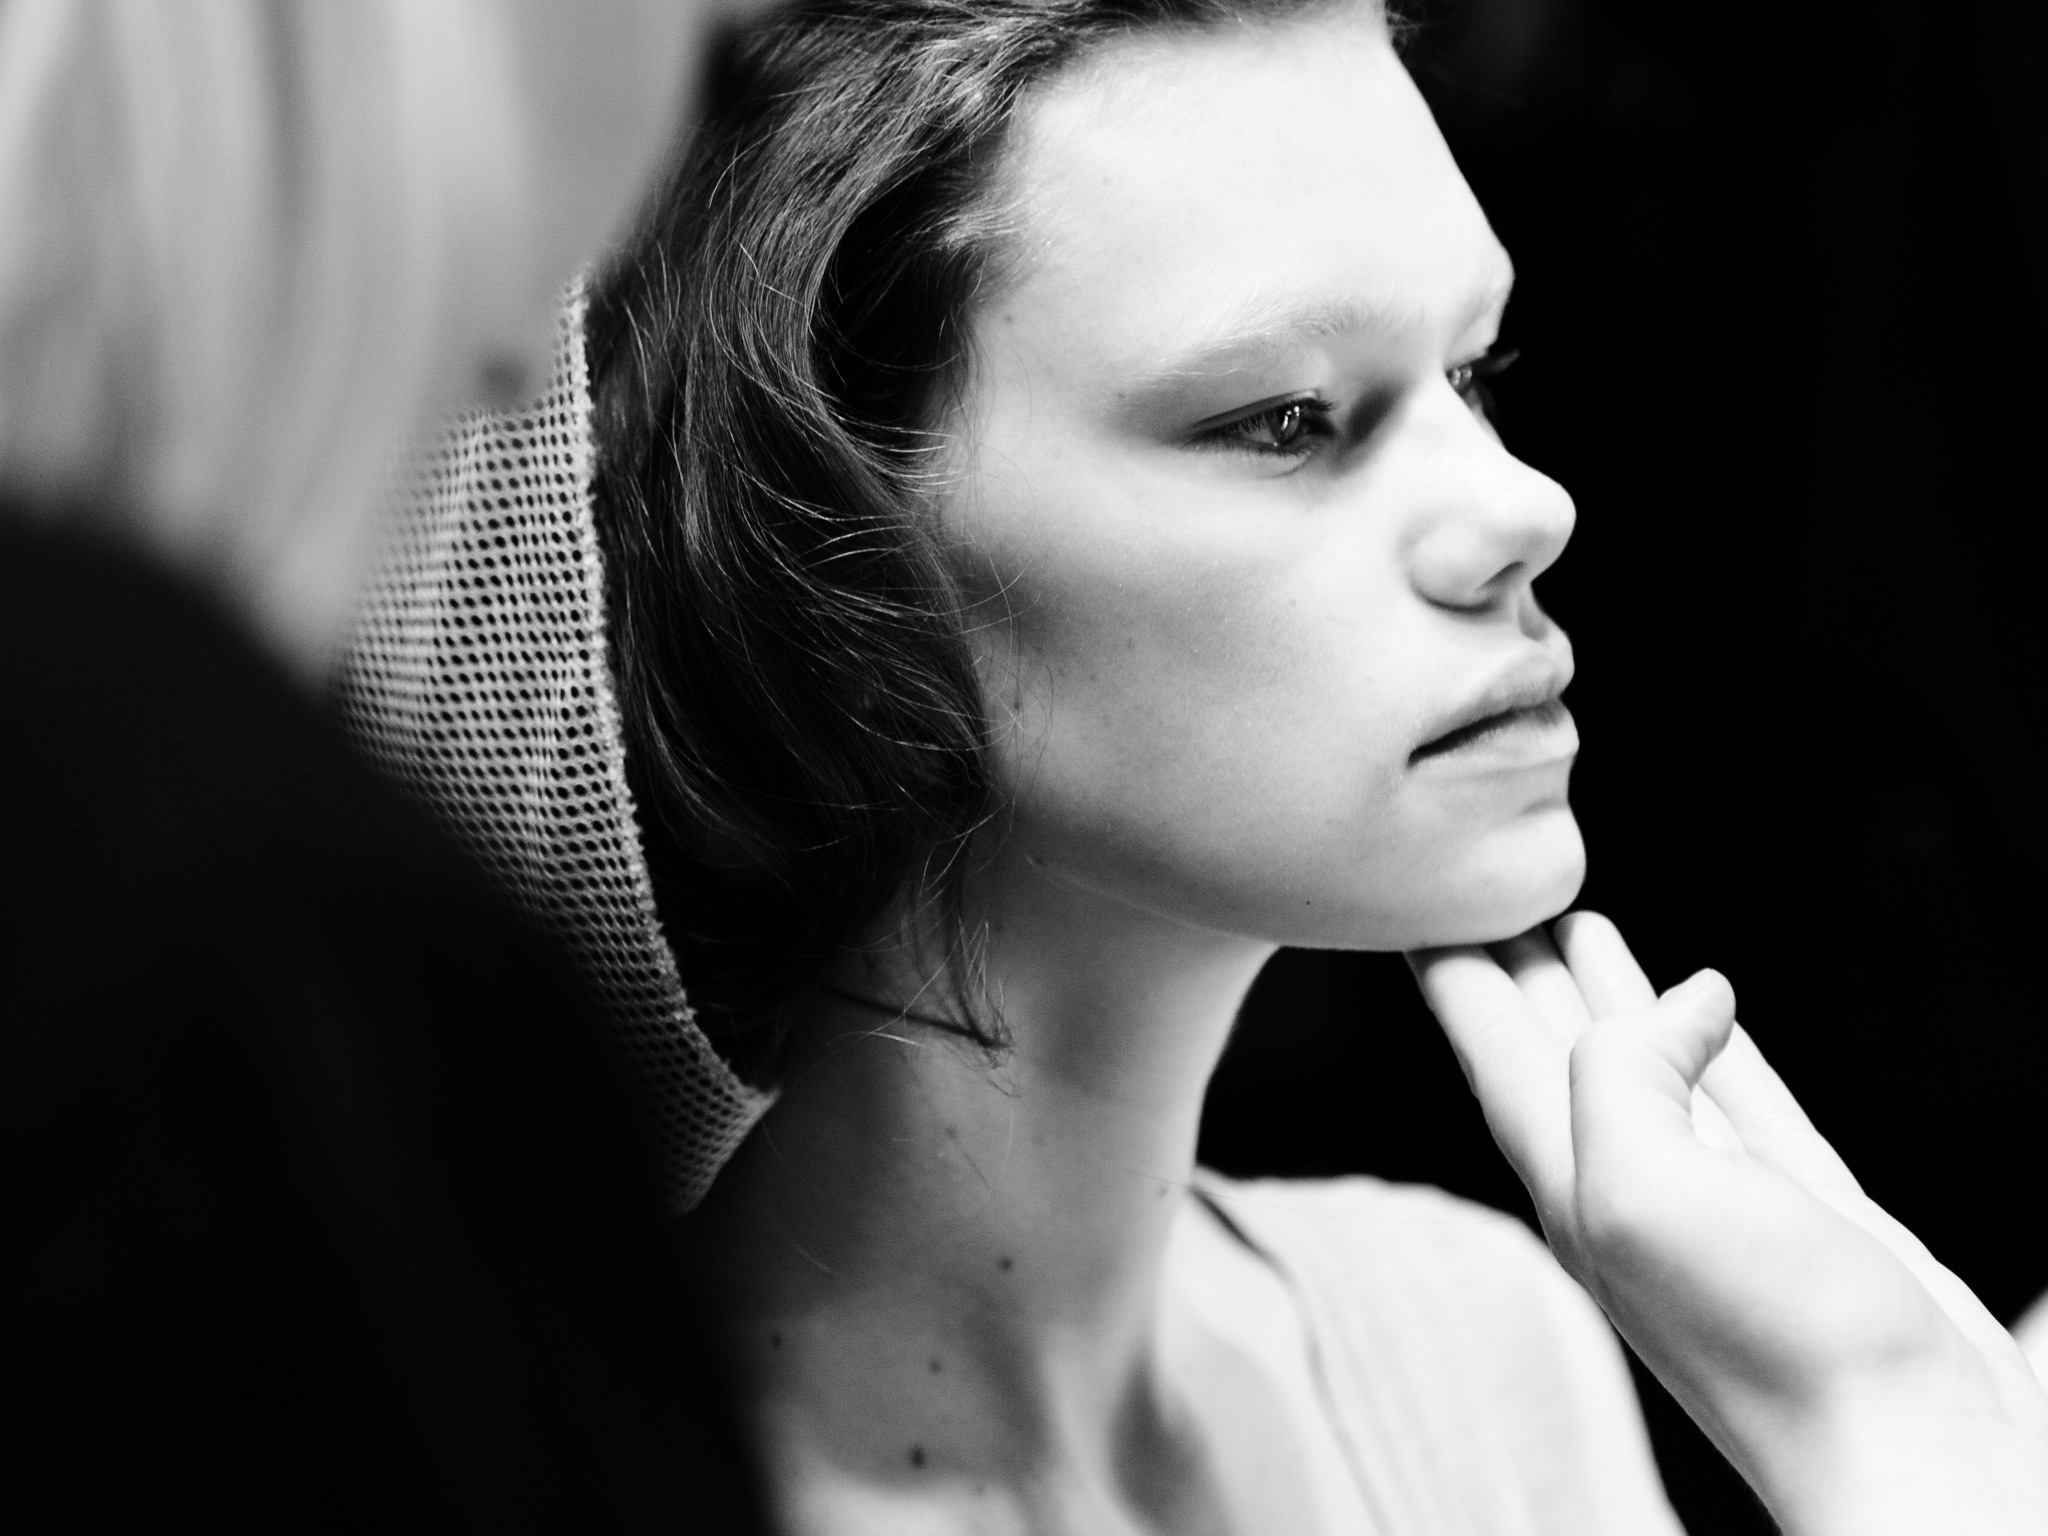 London Fashion Week LFW Runway Show Photography Photograph How to Model Walking Catwalk Youtube Video Guide Tutorial Backstage Kelly Mittendorf